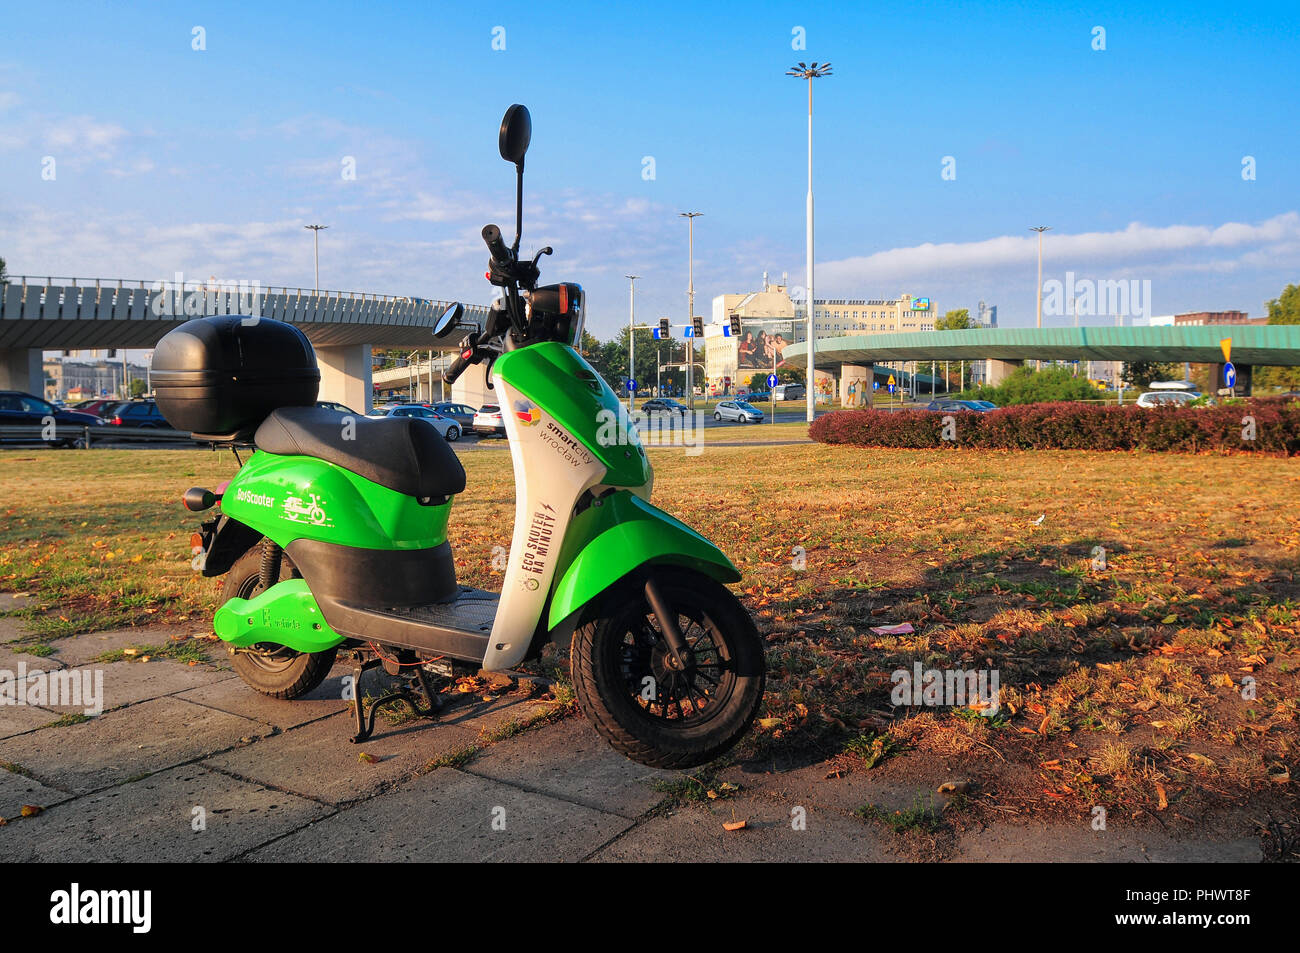 scooter Rental' Stock Photos & 'scooter Rental' Stock Images